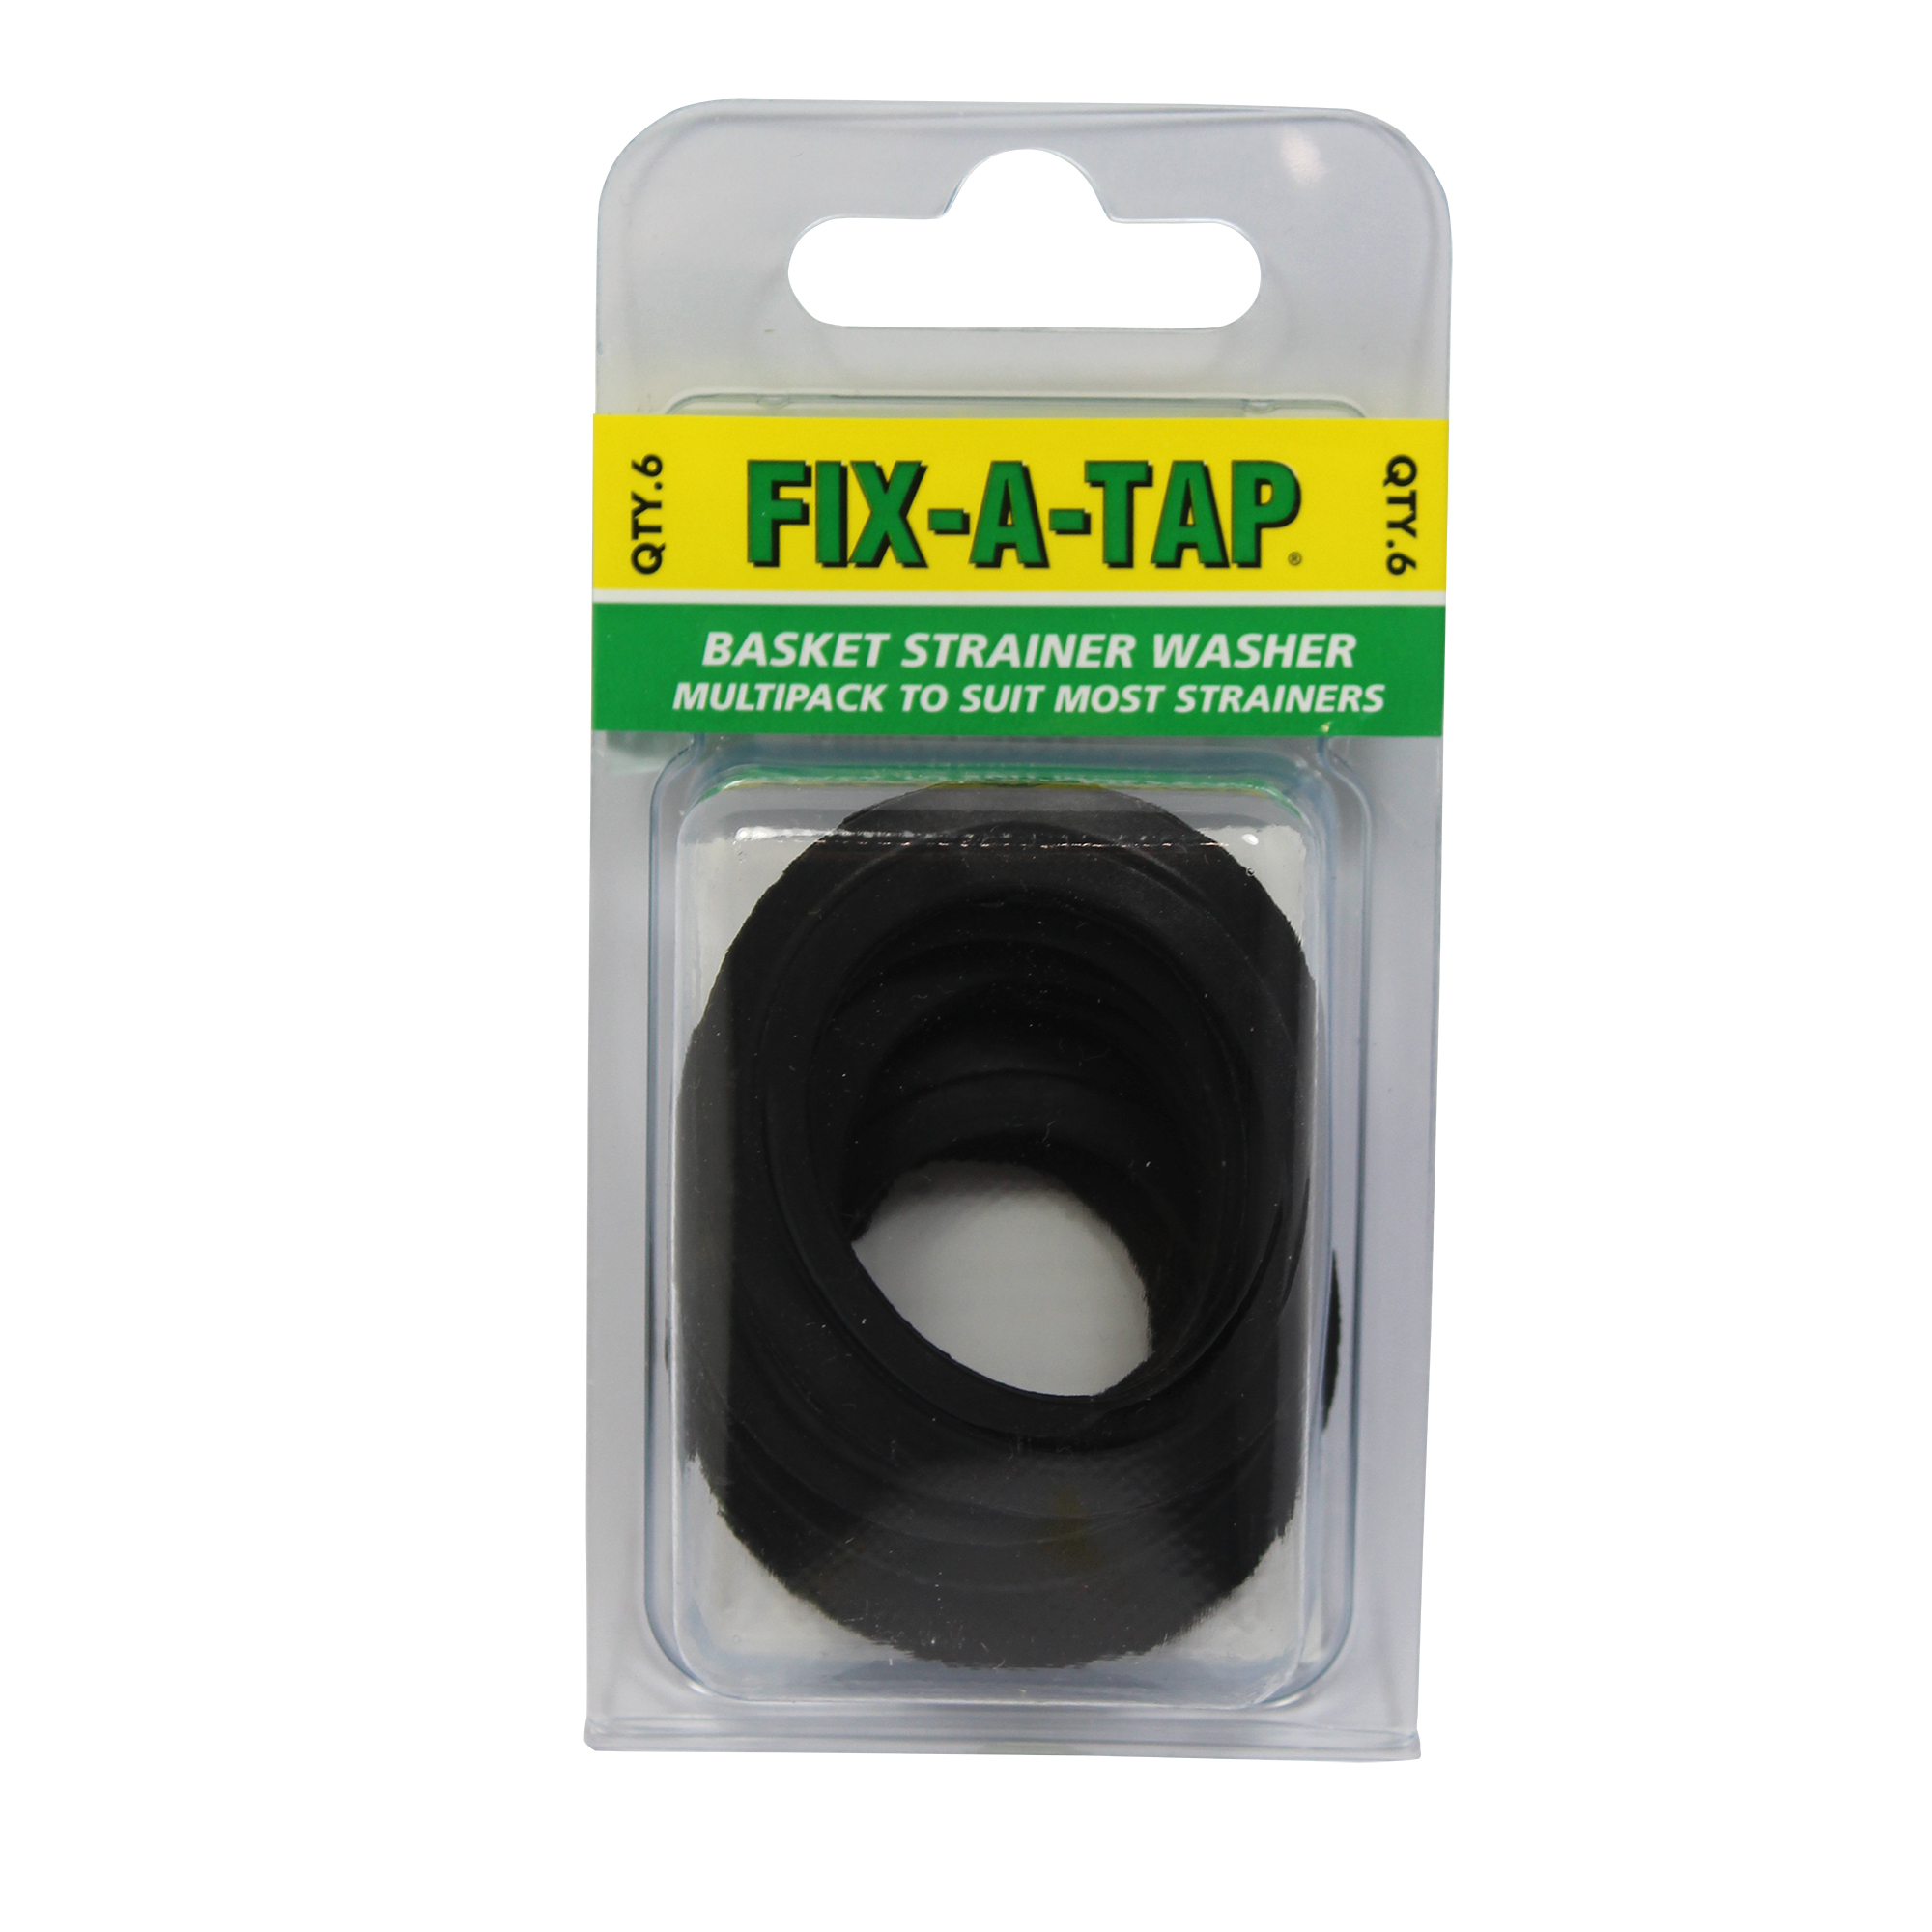 Searching for basket strainer washer - Kitchen sink drain washer replacement ...